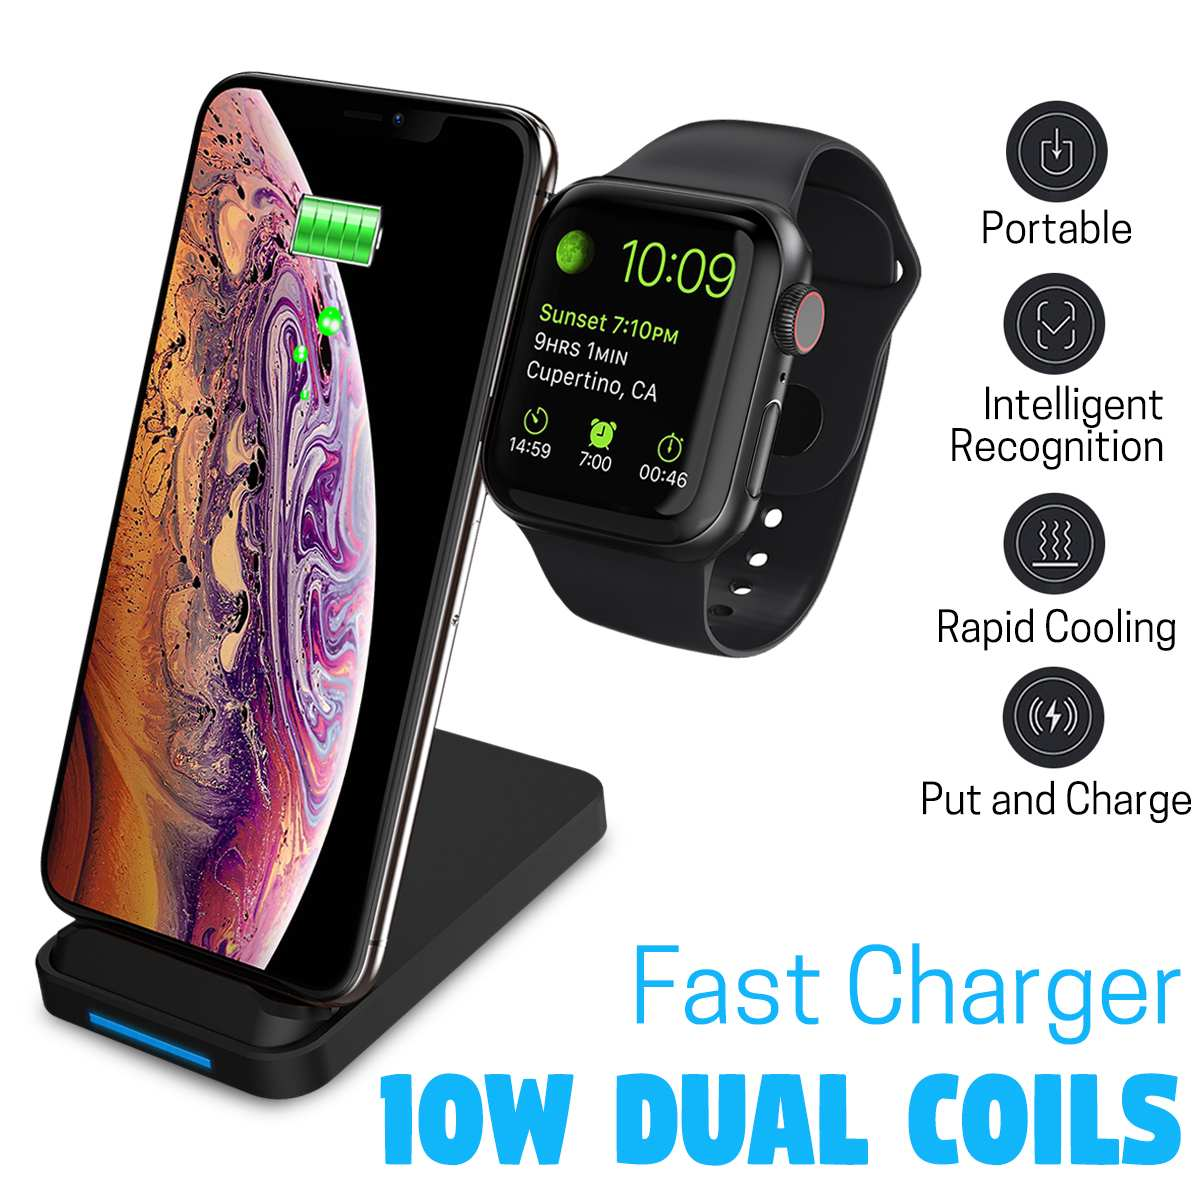 Fast Dual Coils Wireless Charger Dock Station 10W Qi Wireless Charger Pad Stand For Iphone X 8 for Airpod For Apple Watch 4 3 2